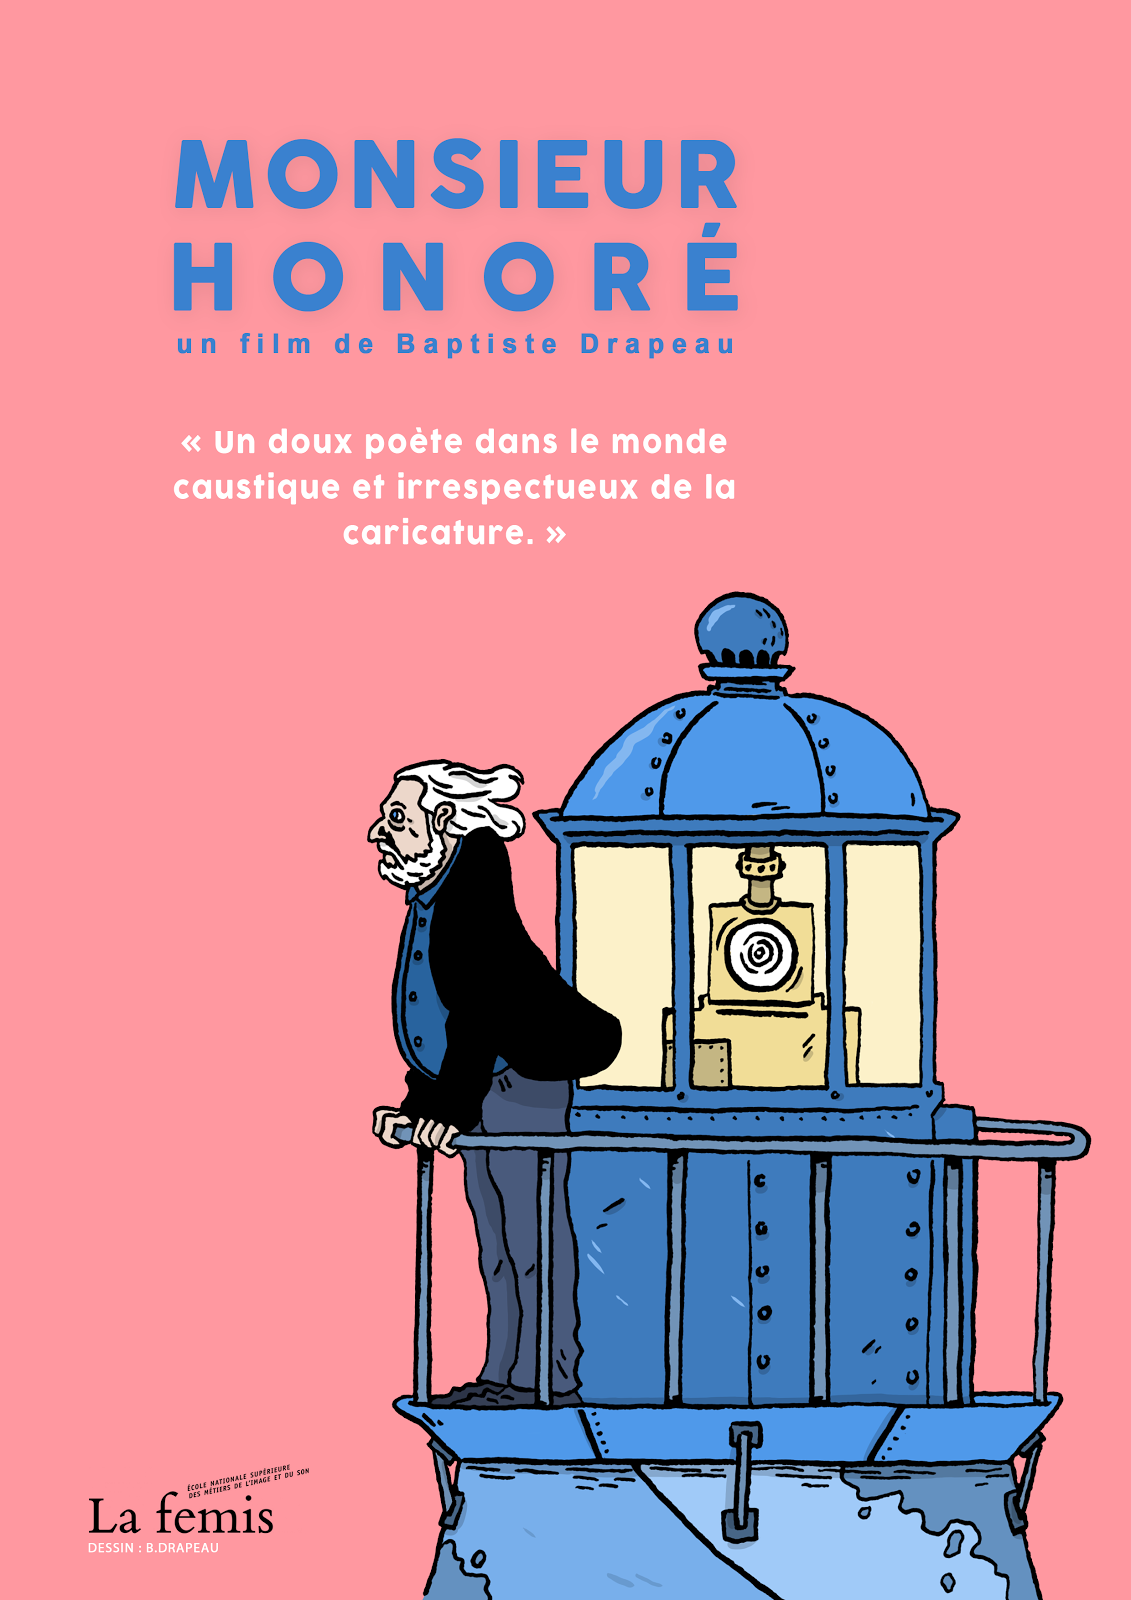 """Monsieur Honoré"" - 46min26"